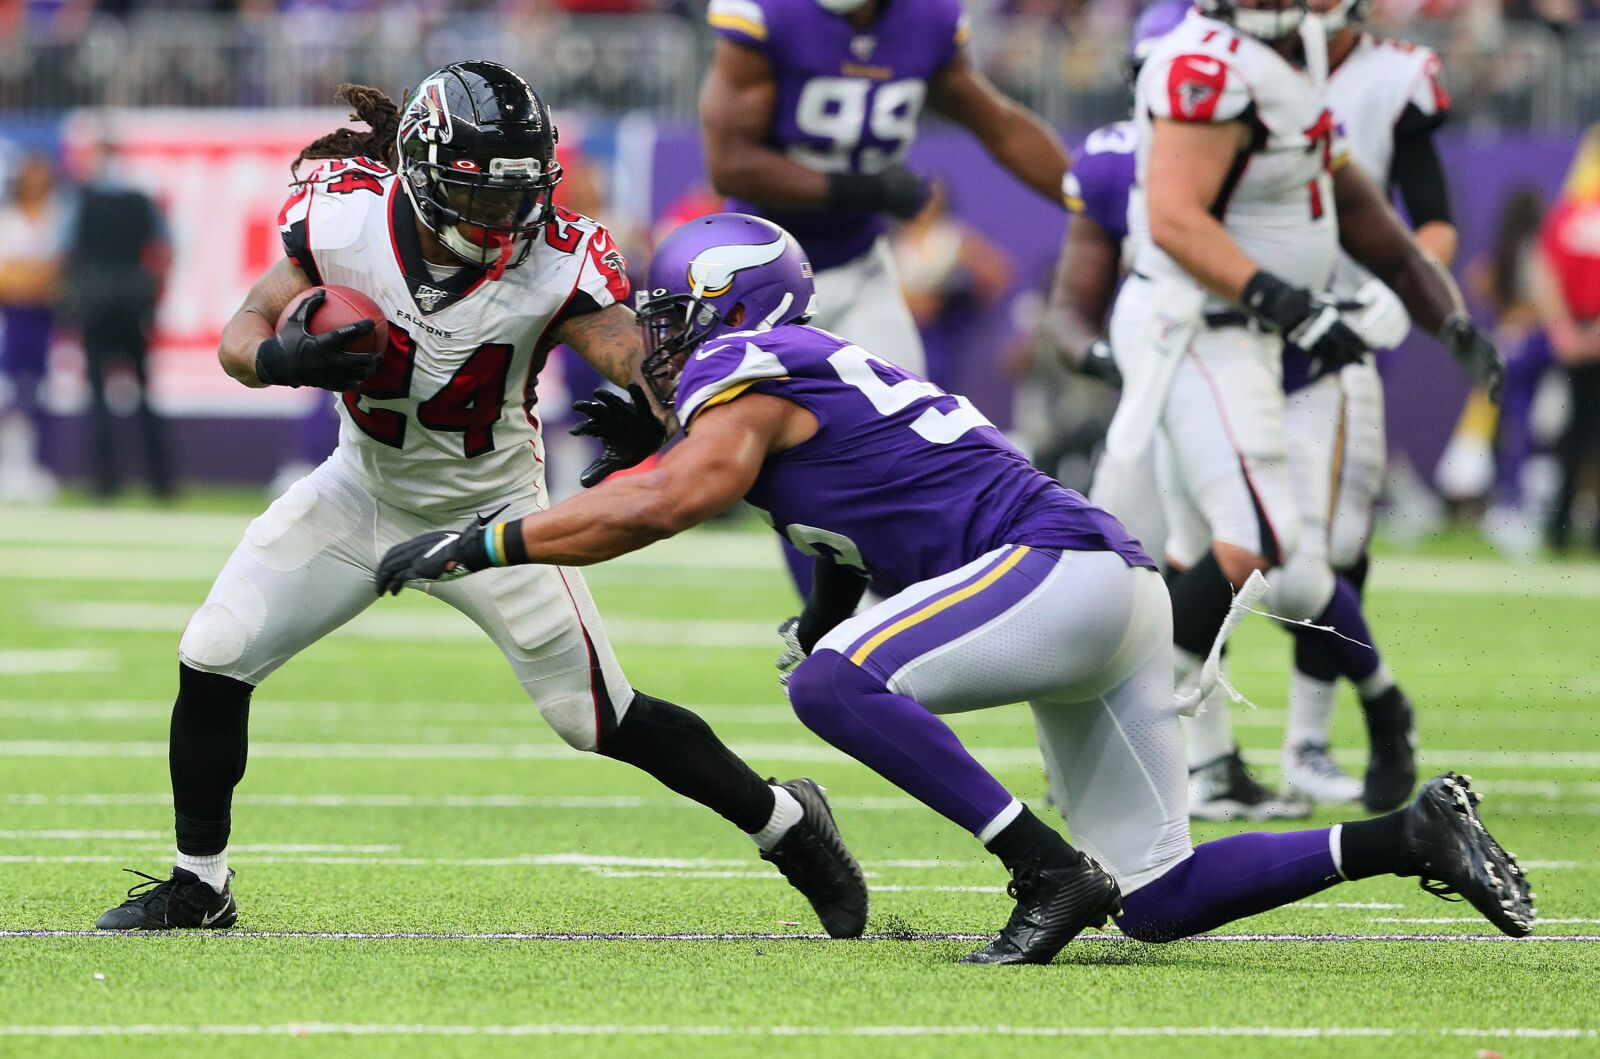 Falcons fans need to chill with the Devonta Freeman hot takes